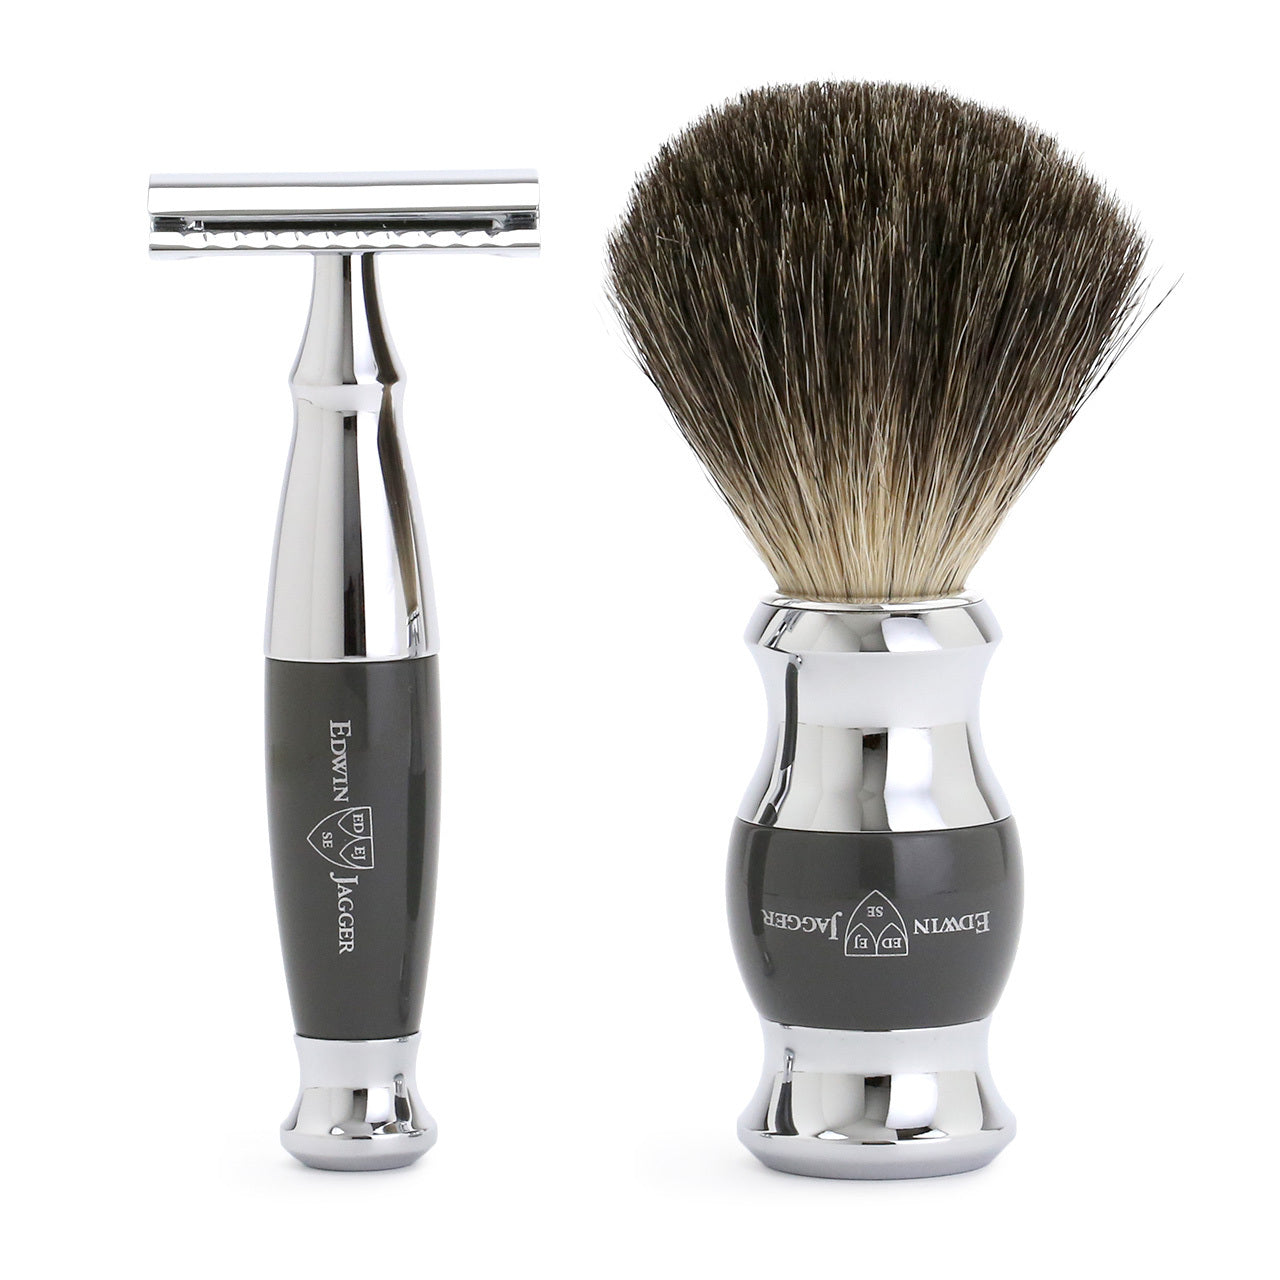 Edwin Jagger Chrome and Grey Shaving set - Safety Razor, Badger Shaving Brush and Stand